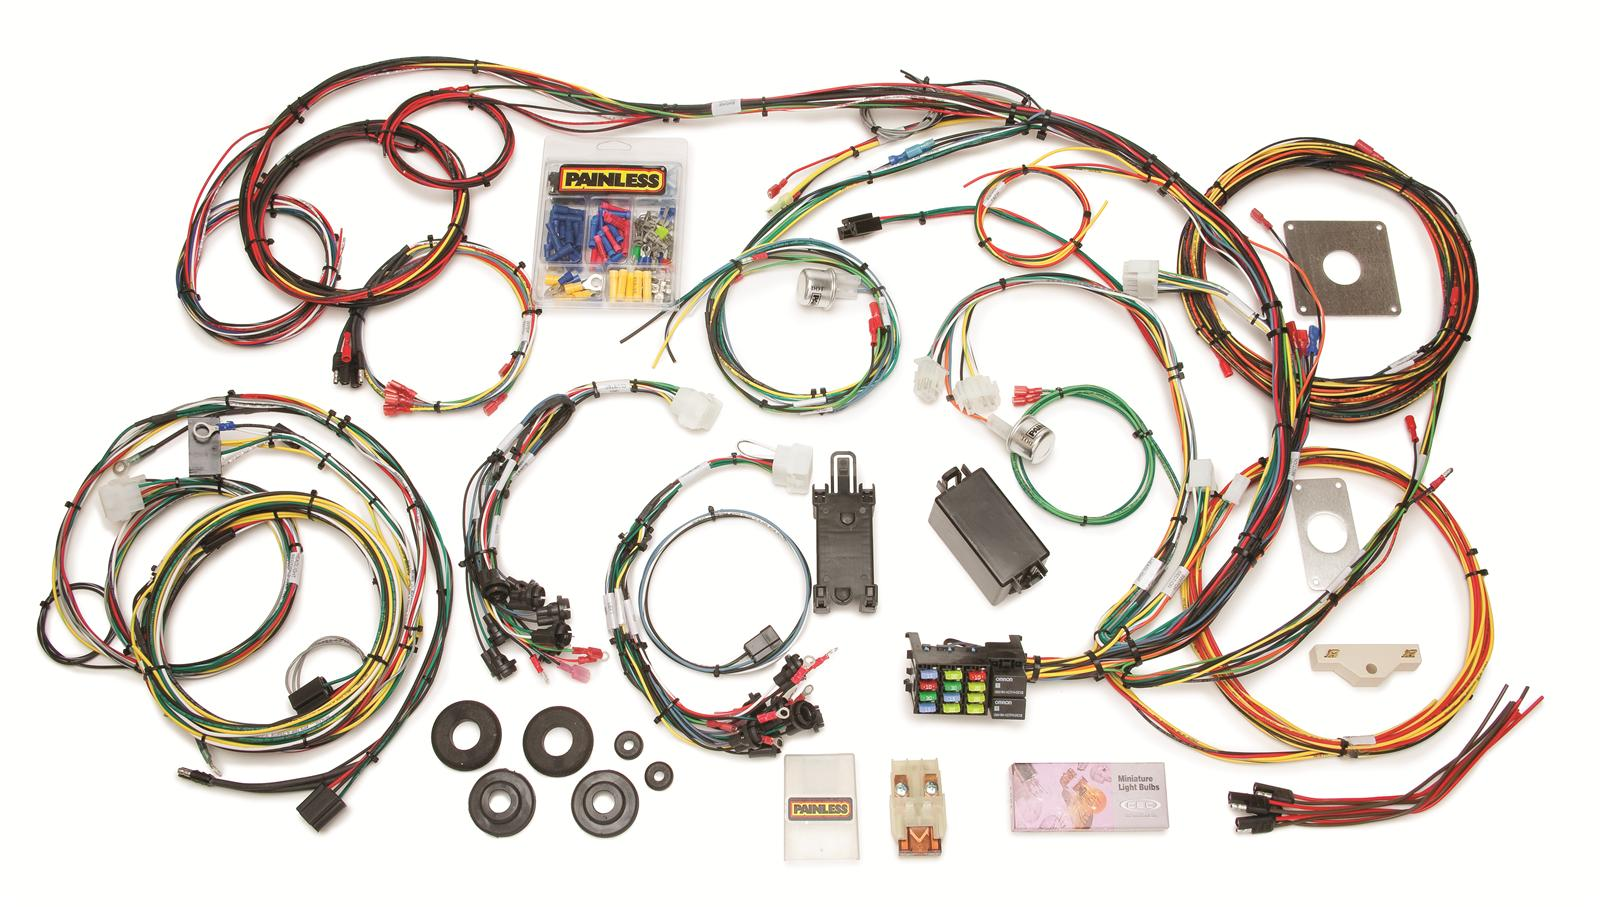 small resolution of hight resolution of 65 mustang wire harness kit schema wiring diagram 65 mustang wiring harness diagram